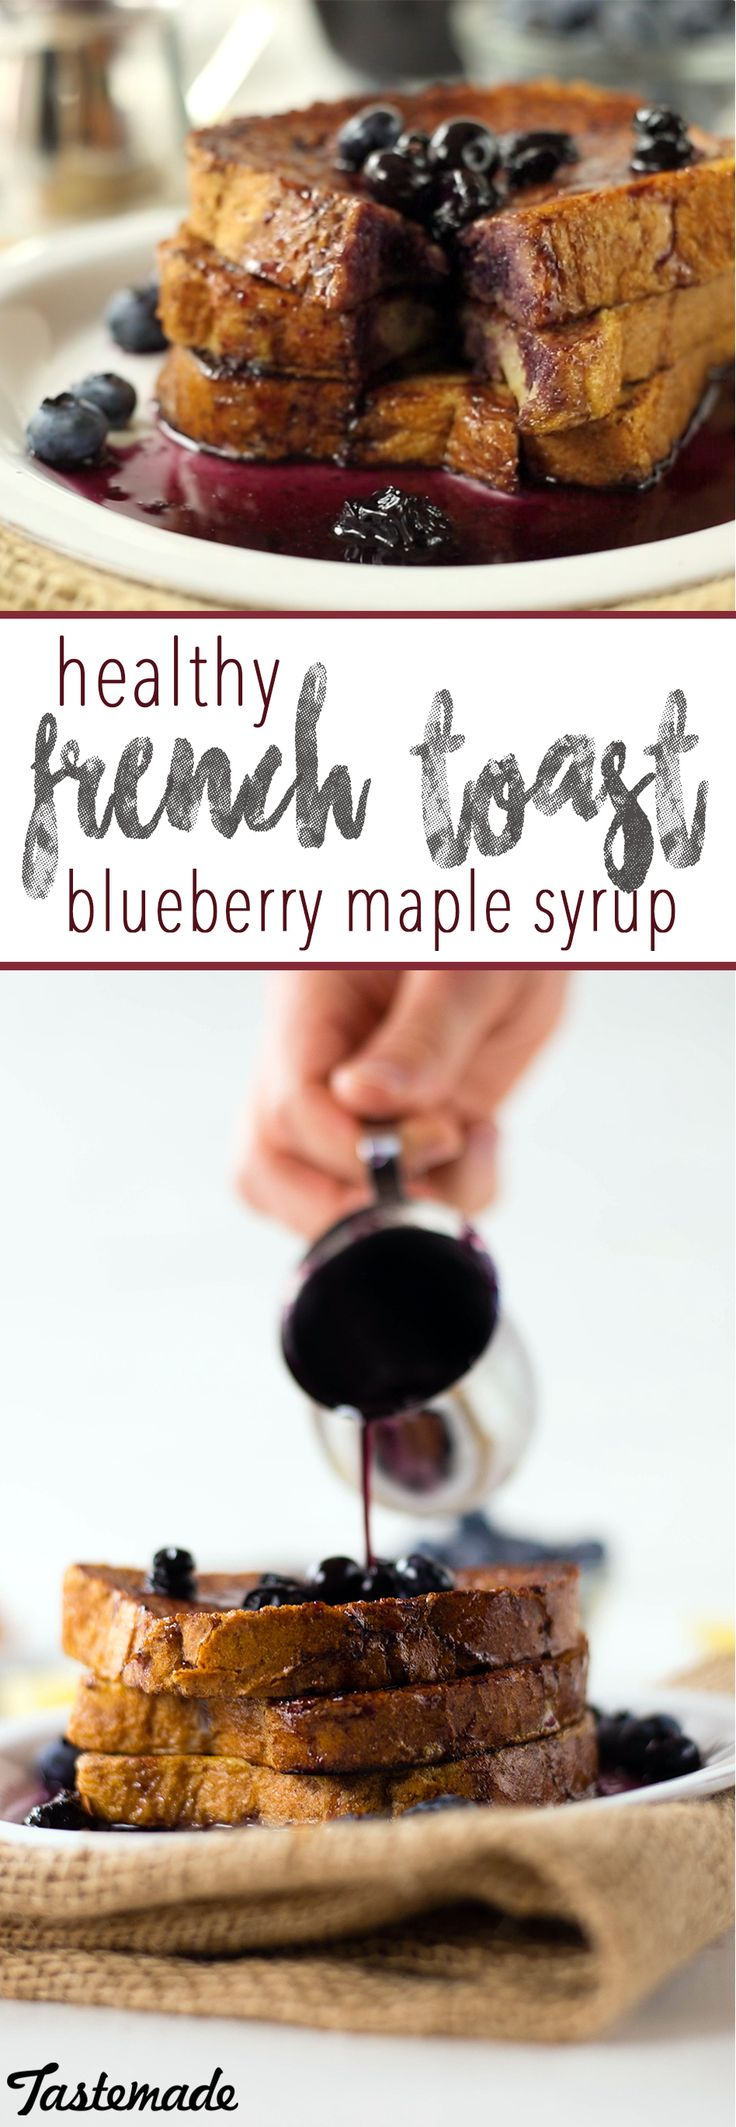 Enjoy French toast with a few easy, healthy substitutions! Save the recipe on our app! http://link.tastemade.com/HE7m/H1wHe4m2mA